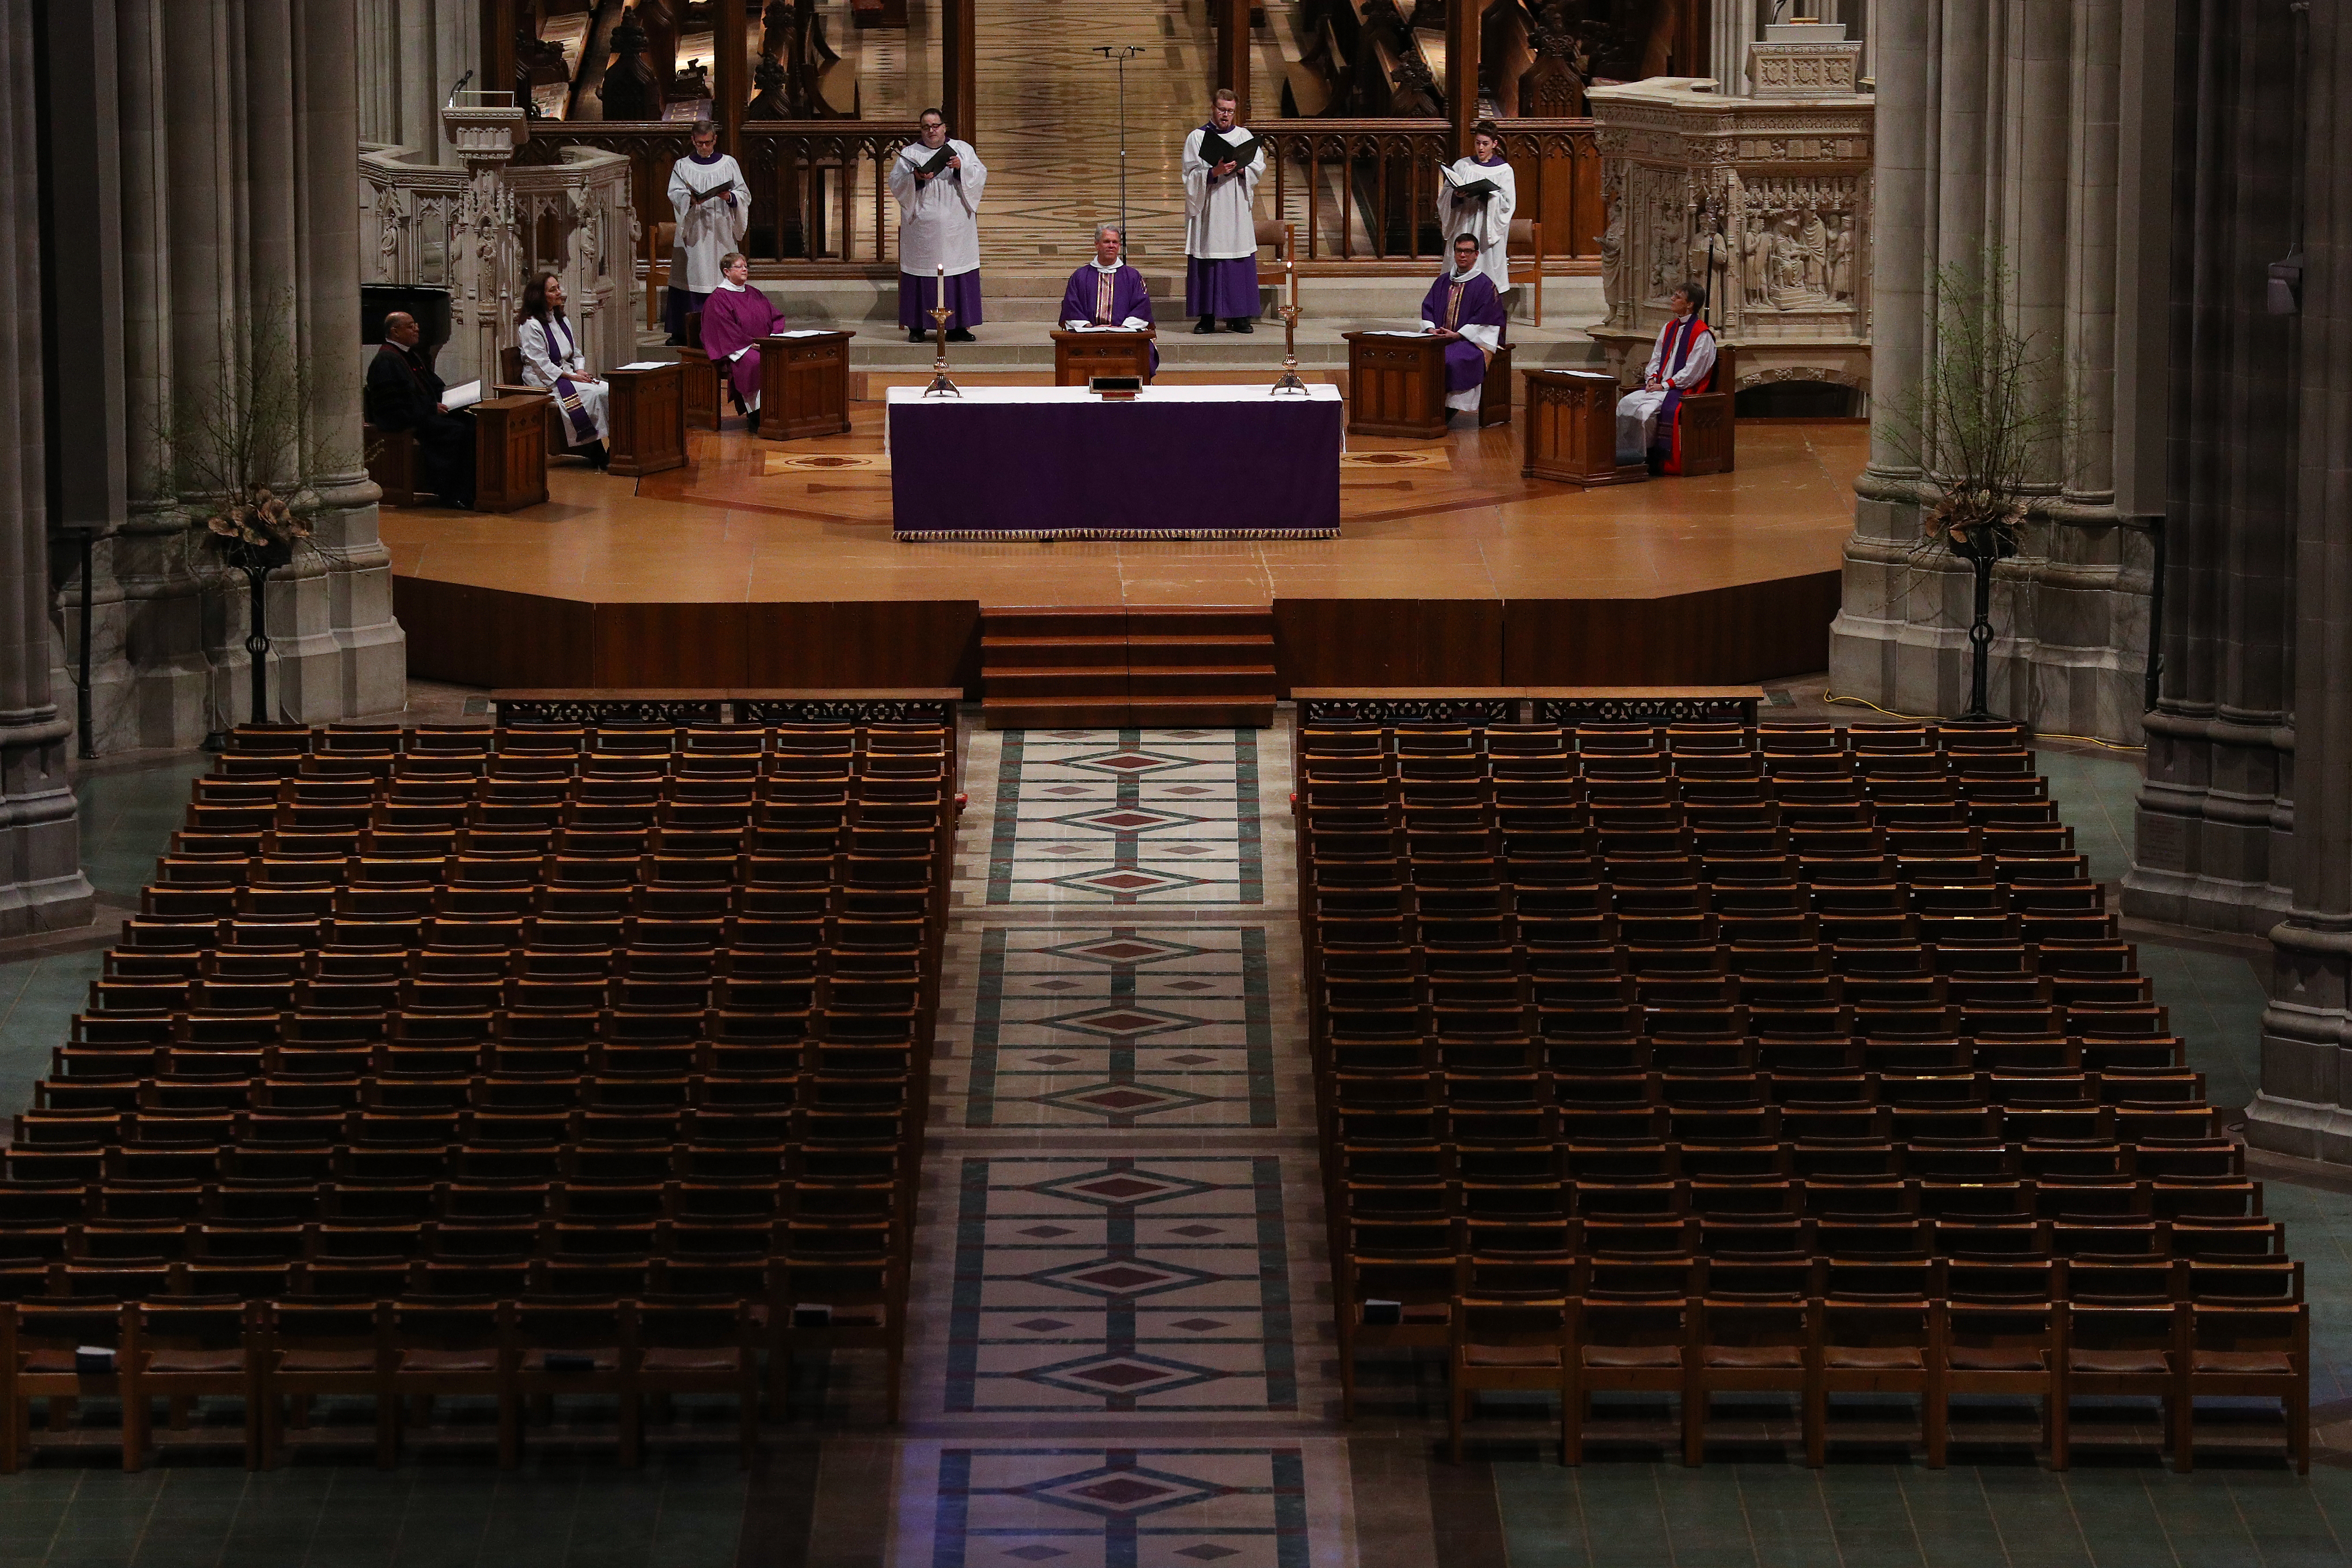 WASHINGTON, DC - MARCH 22: The Very Rev. Dean Randy Hollerith holds Sunday Mass as it is live-webcast to its parishioners due to the Coronavirus at an empty Washington National Cathedral on March 22, 2020 in Washington, DC. (Photo by Patrick Smith/Getty Images)